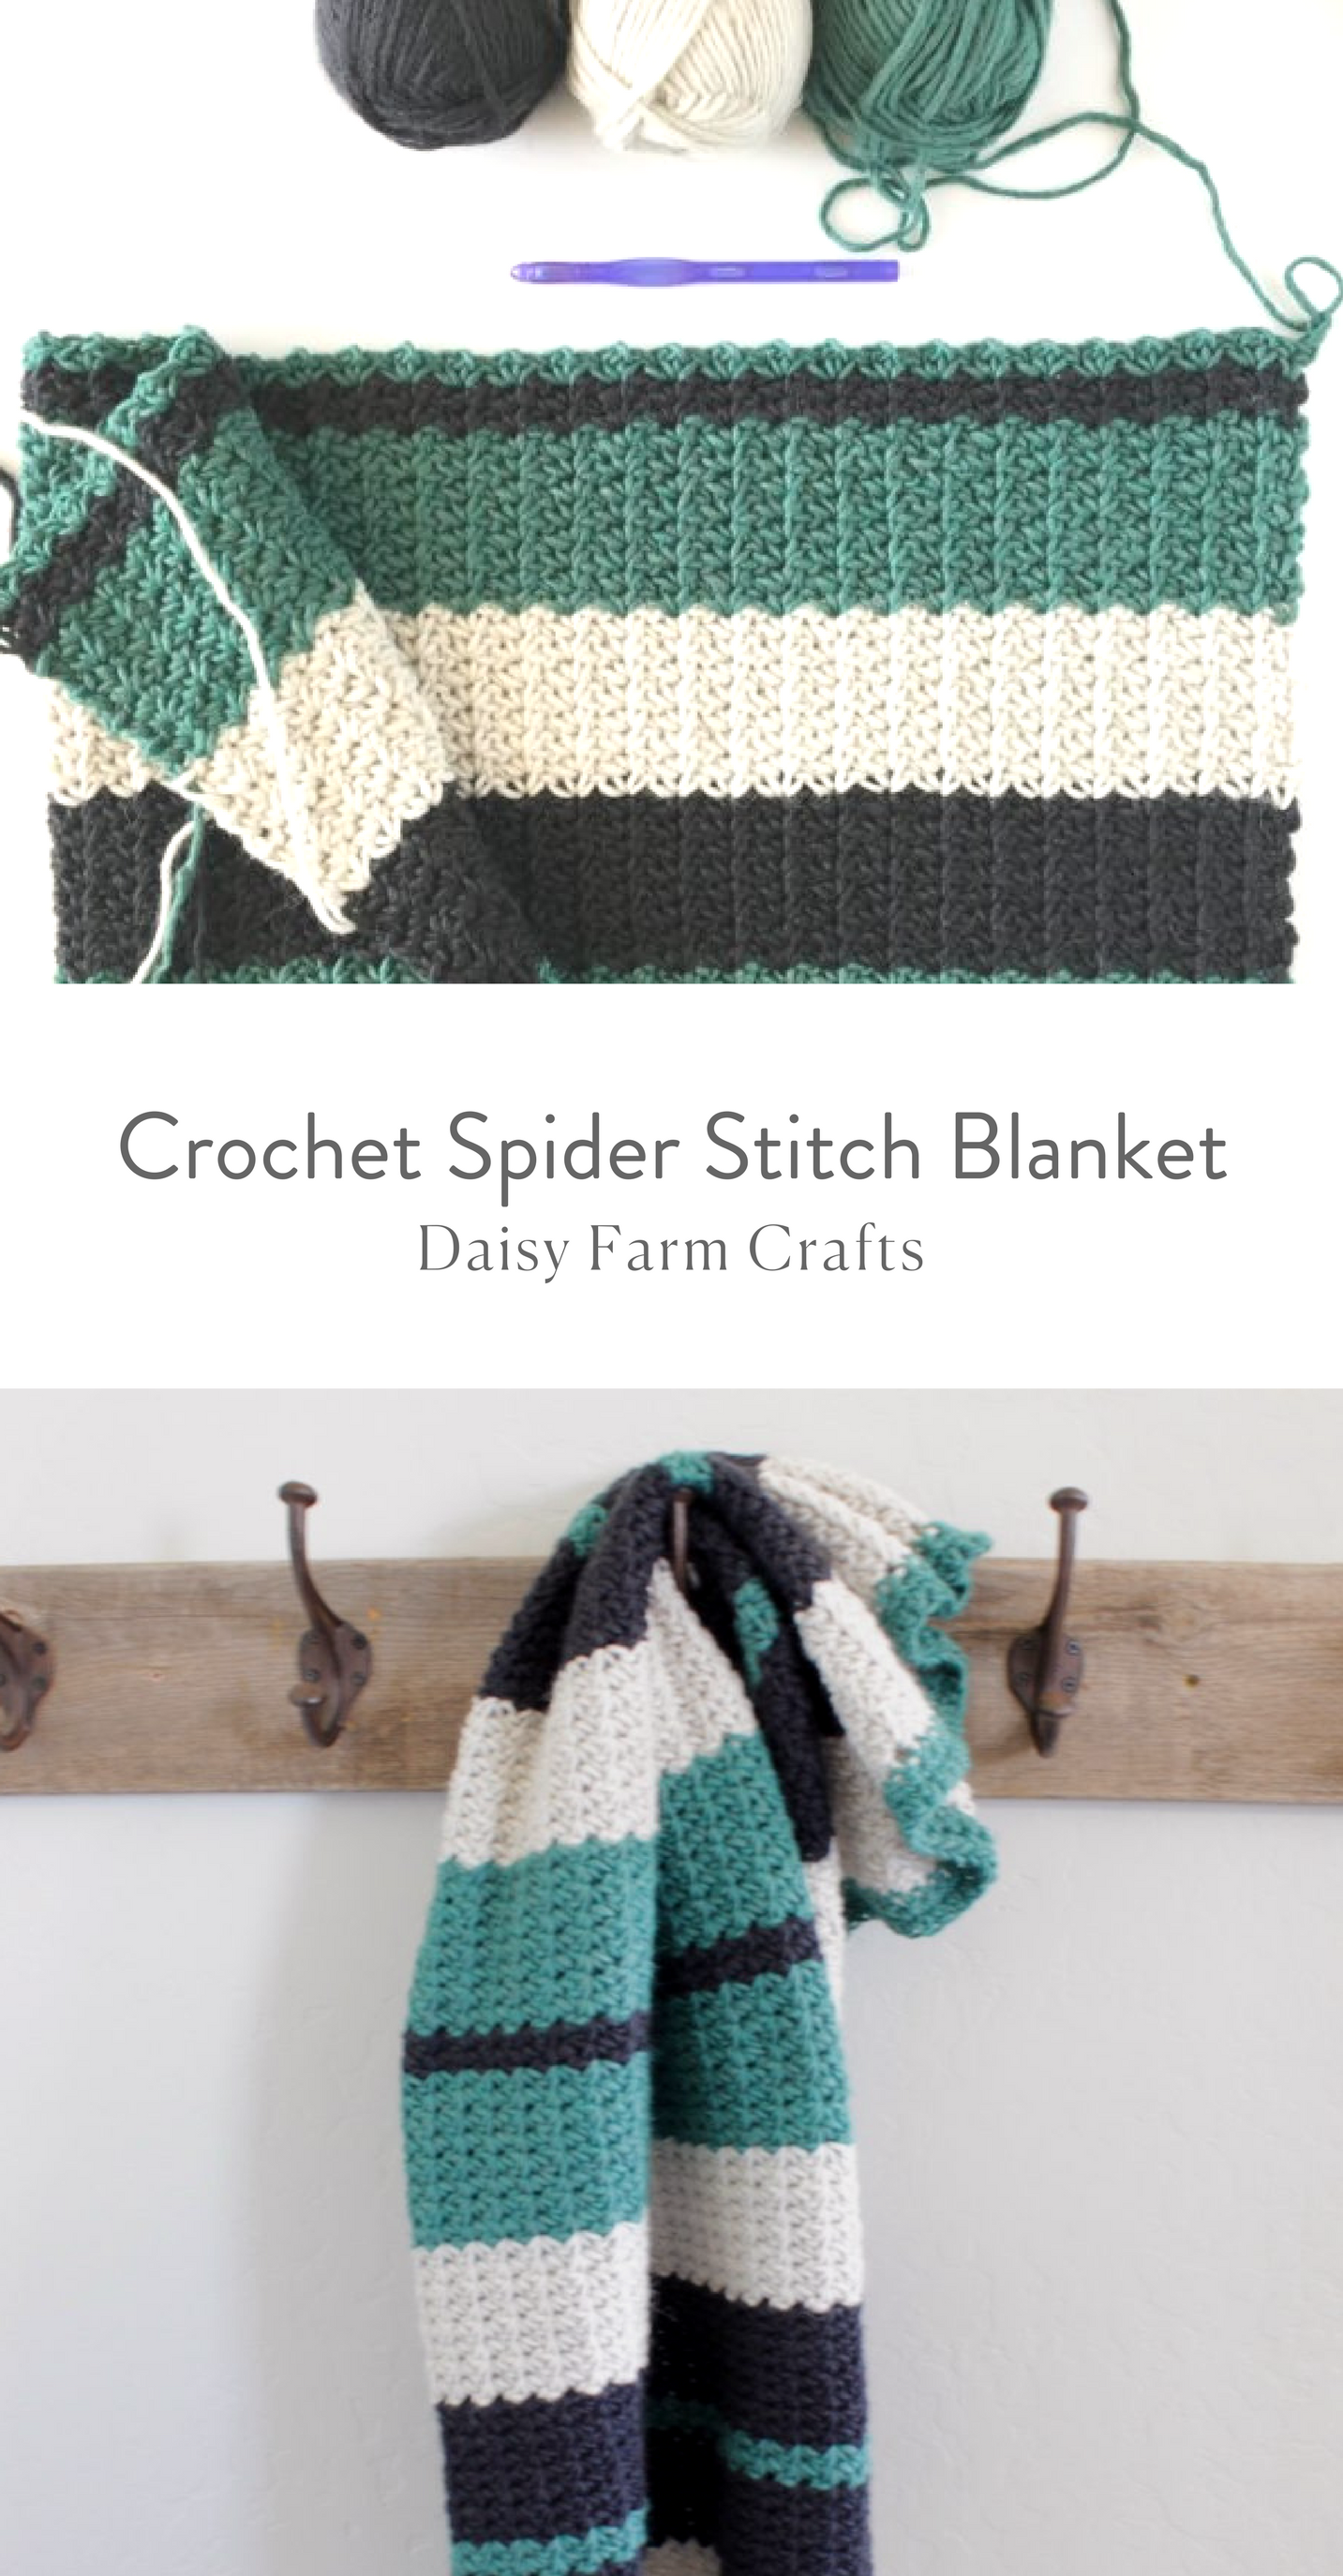 Free Pattern - Crochet Spider Stitch Blanket | Daisy Farm Crafts ...